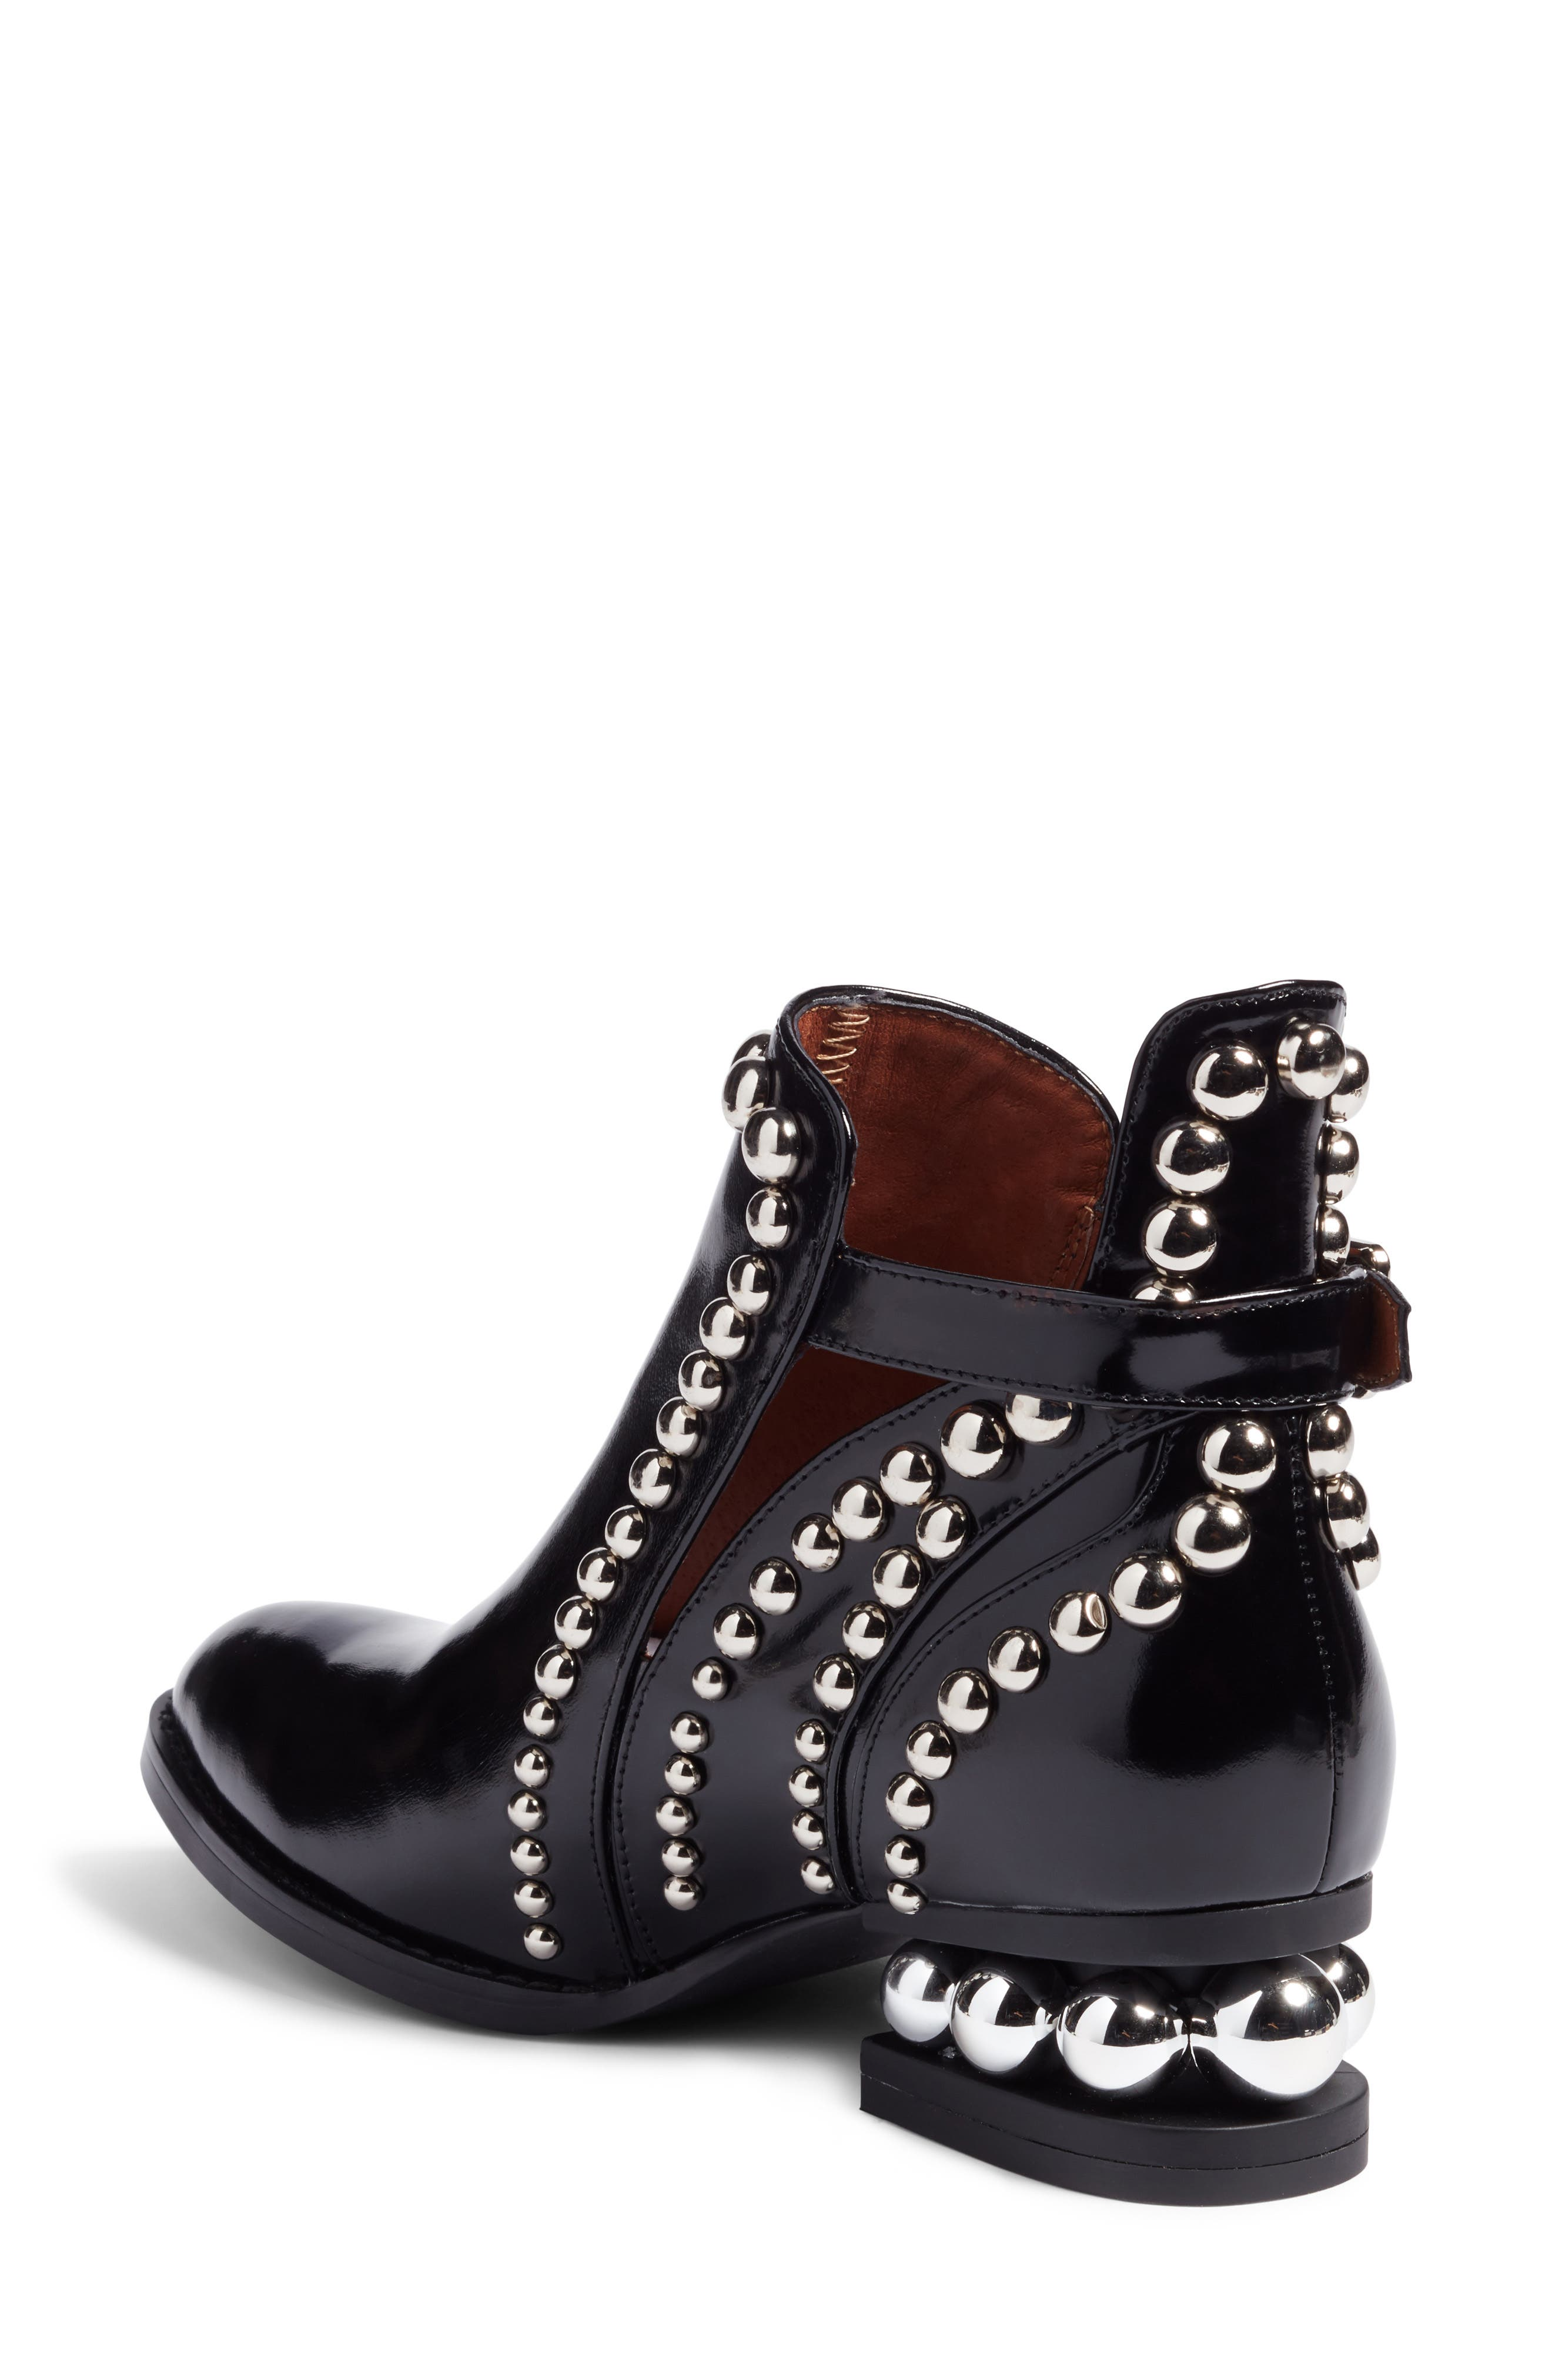 Rylance Studded Bootie,                             Alternate thumbnail 2, color,                             001